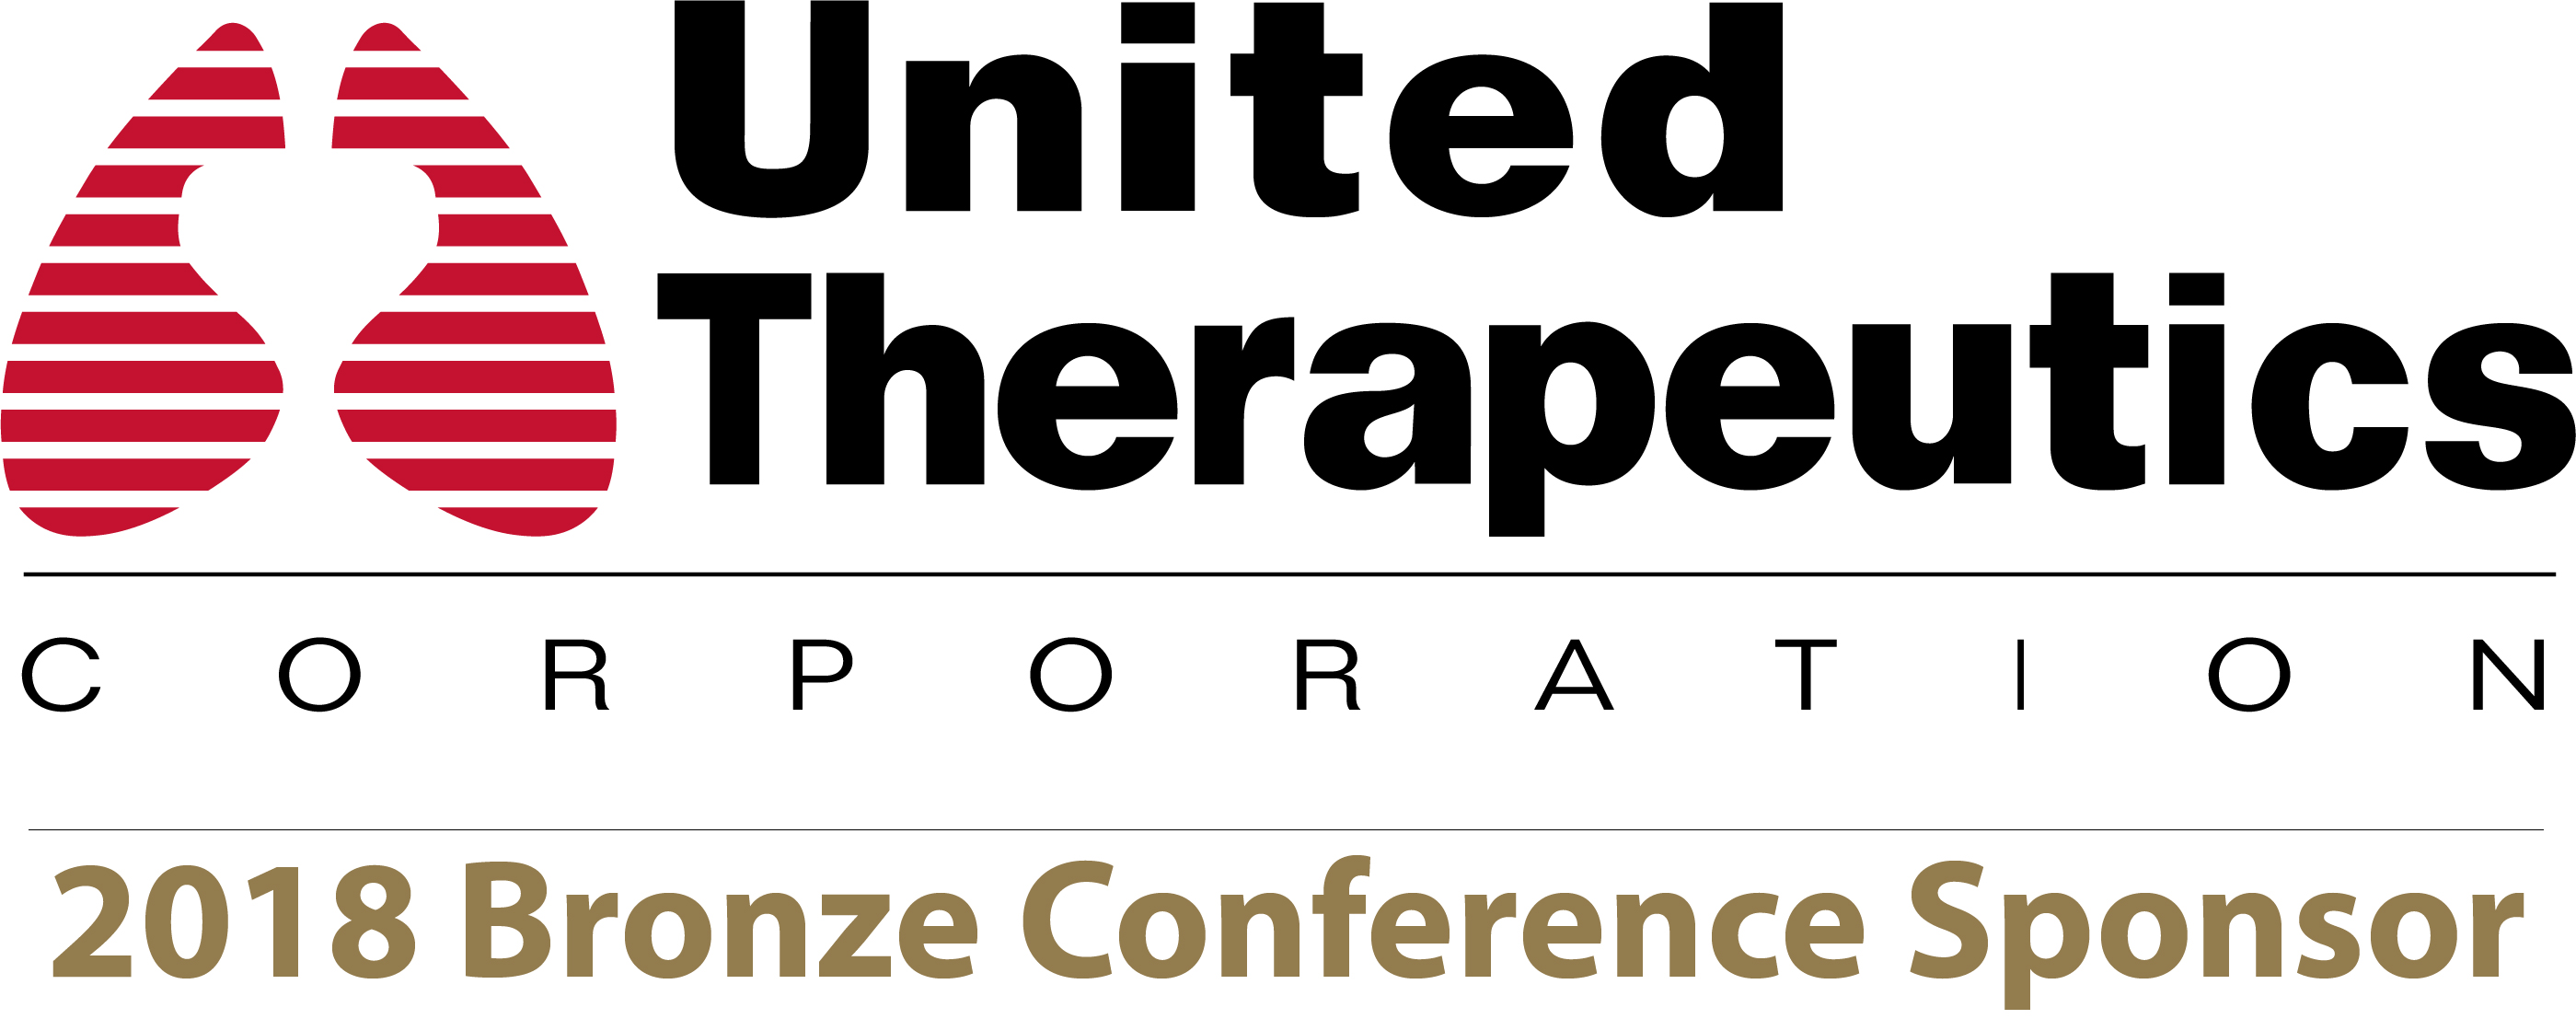 United Therapeutics 2018 Bronze Conference Sponsor